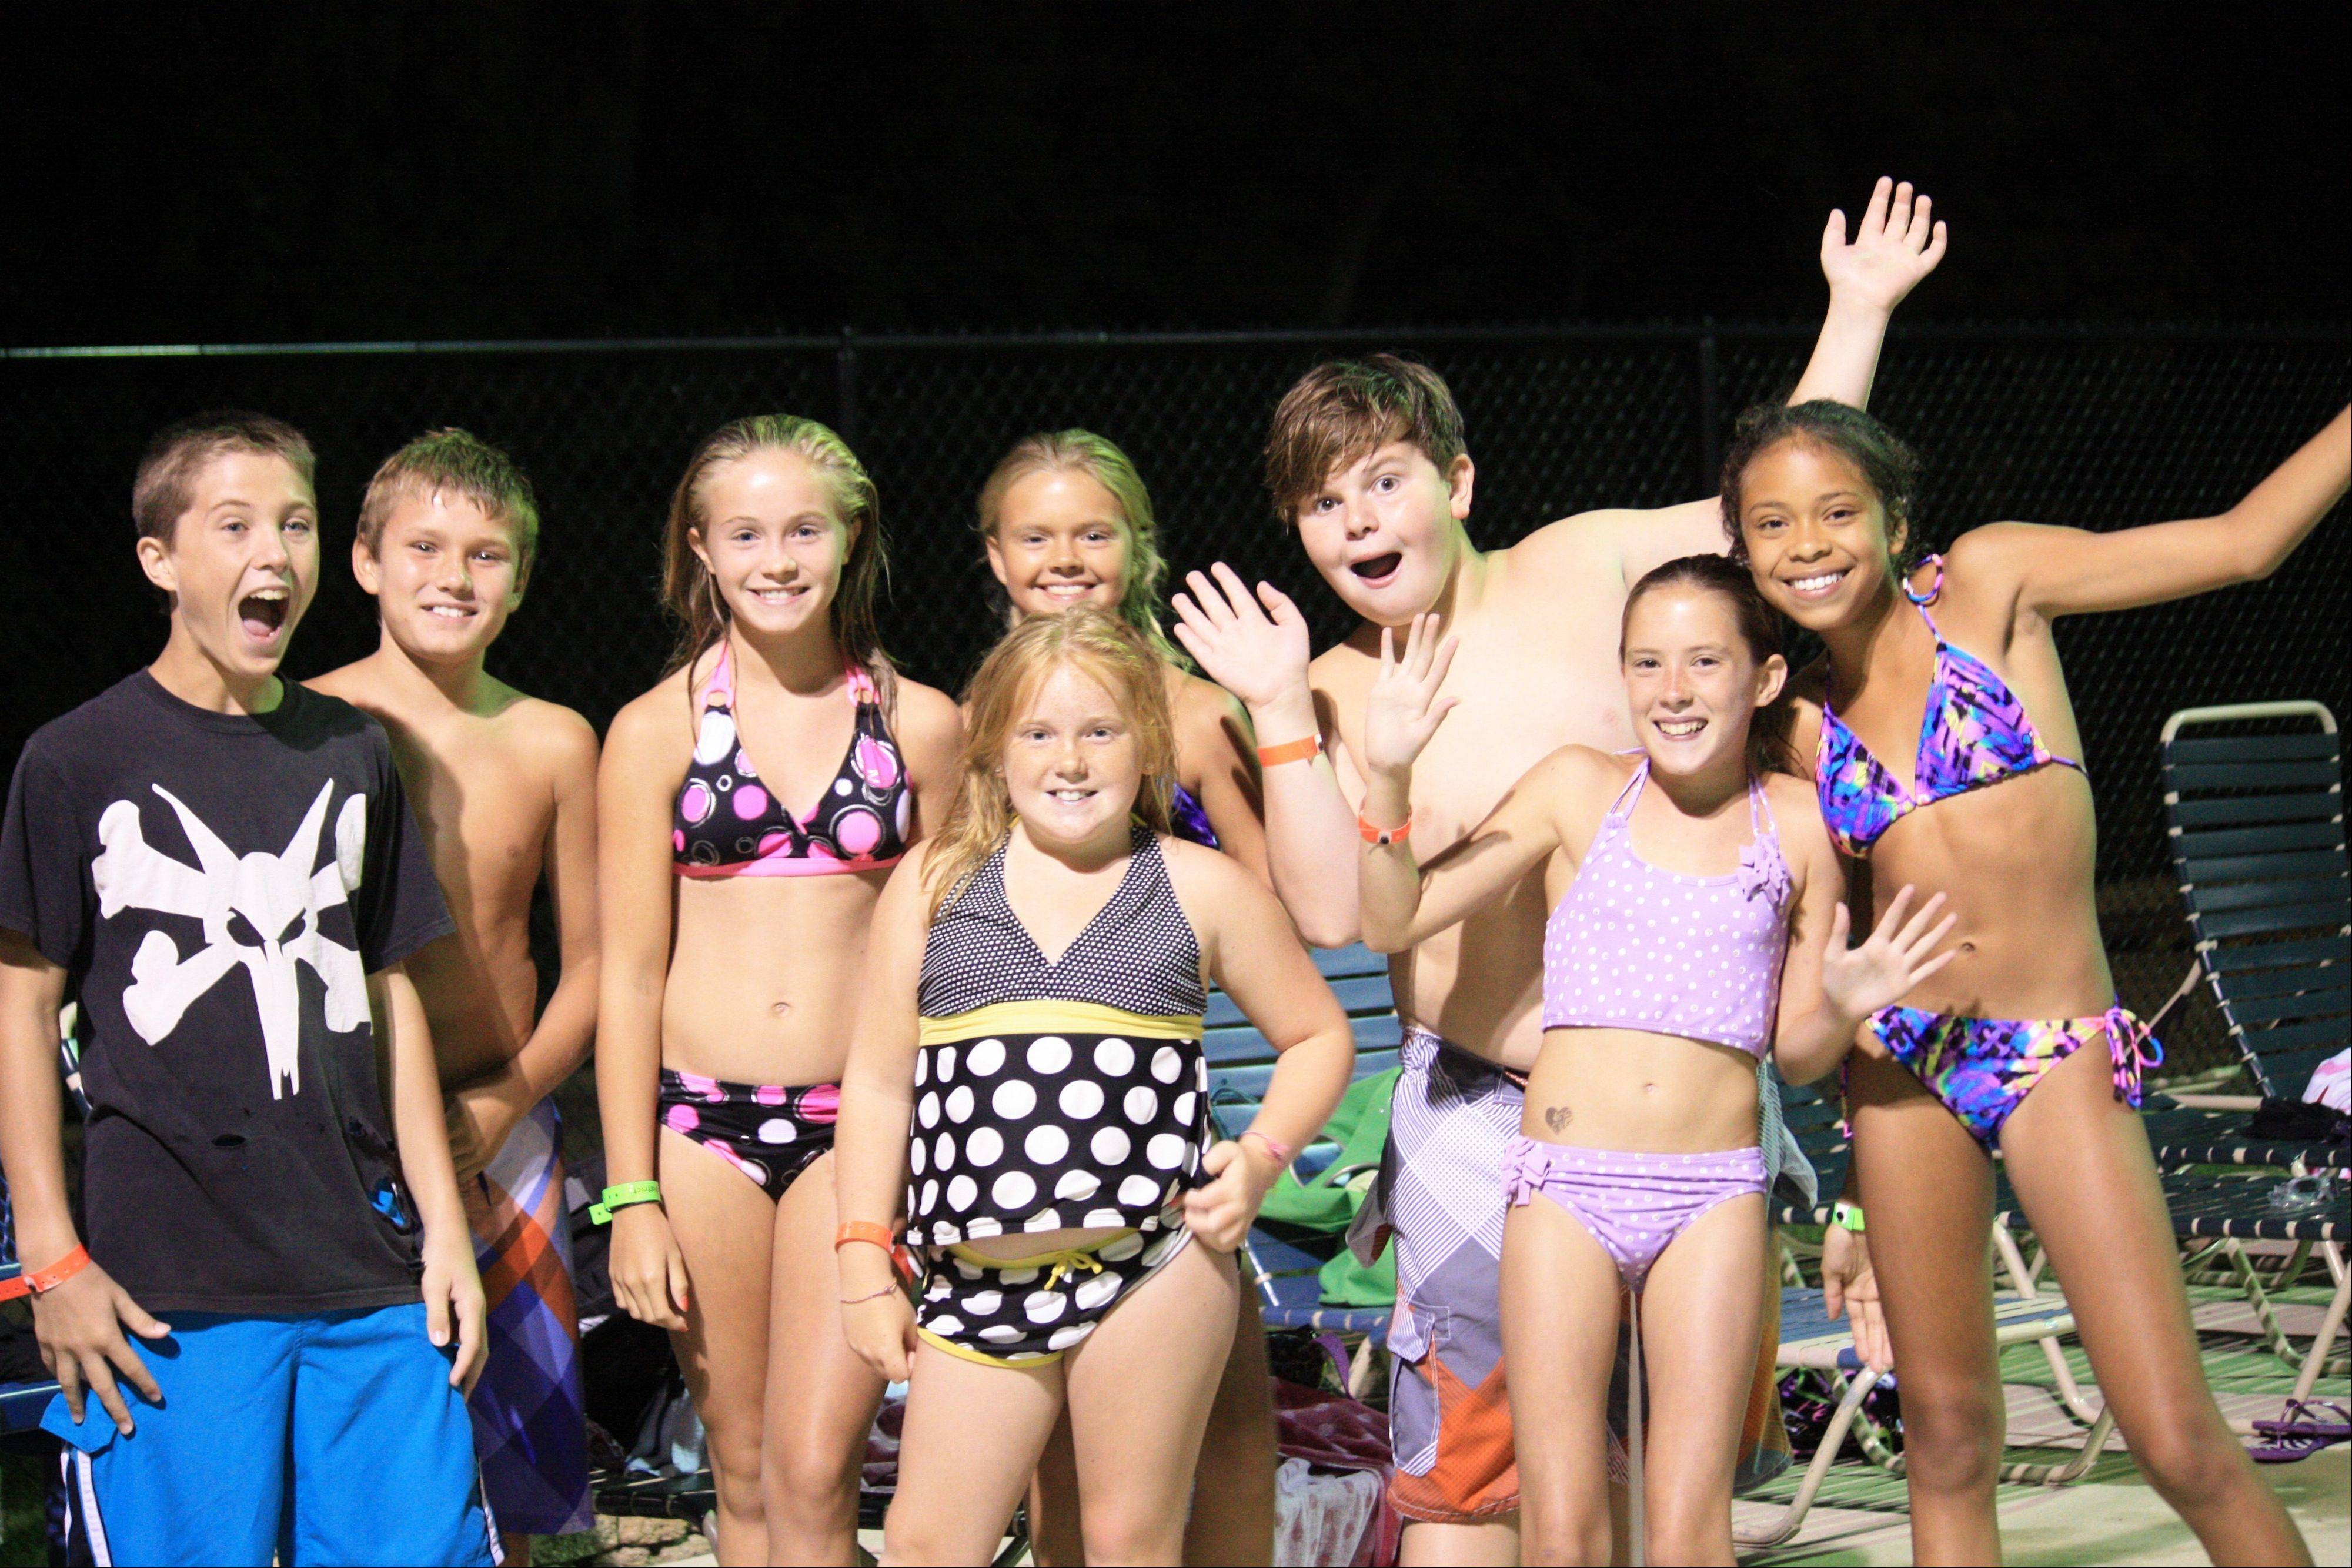 Tweens ham it up for the camera at last year's after-hours pool party. This year, the Palatine Park District will offer its pool party for tweens from 8 to 10 p.m. Friday, July 19. For information, visit palatineparks.org.